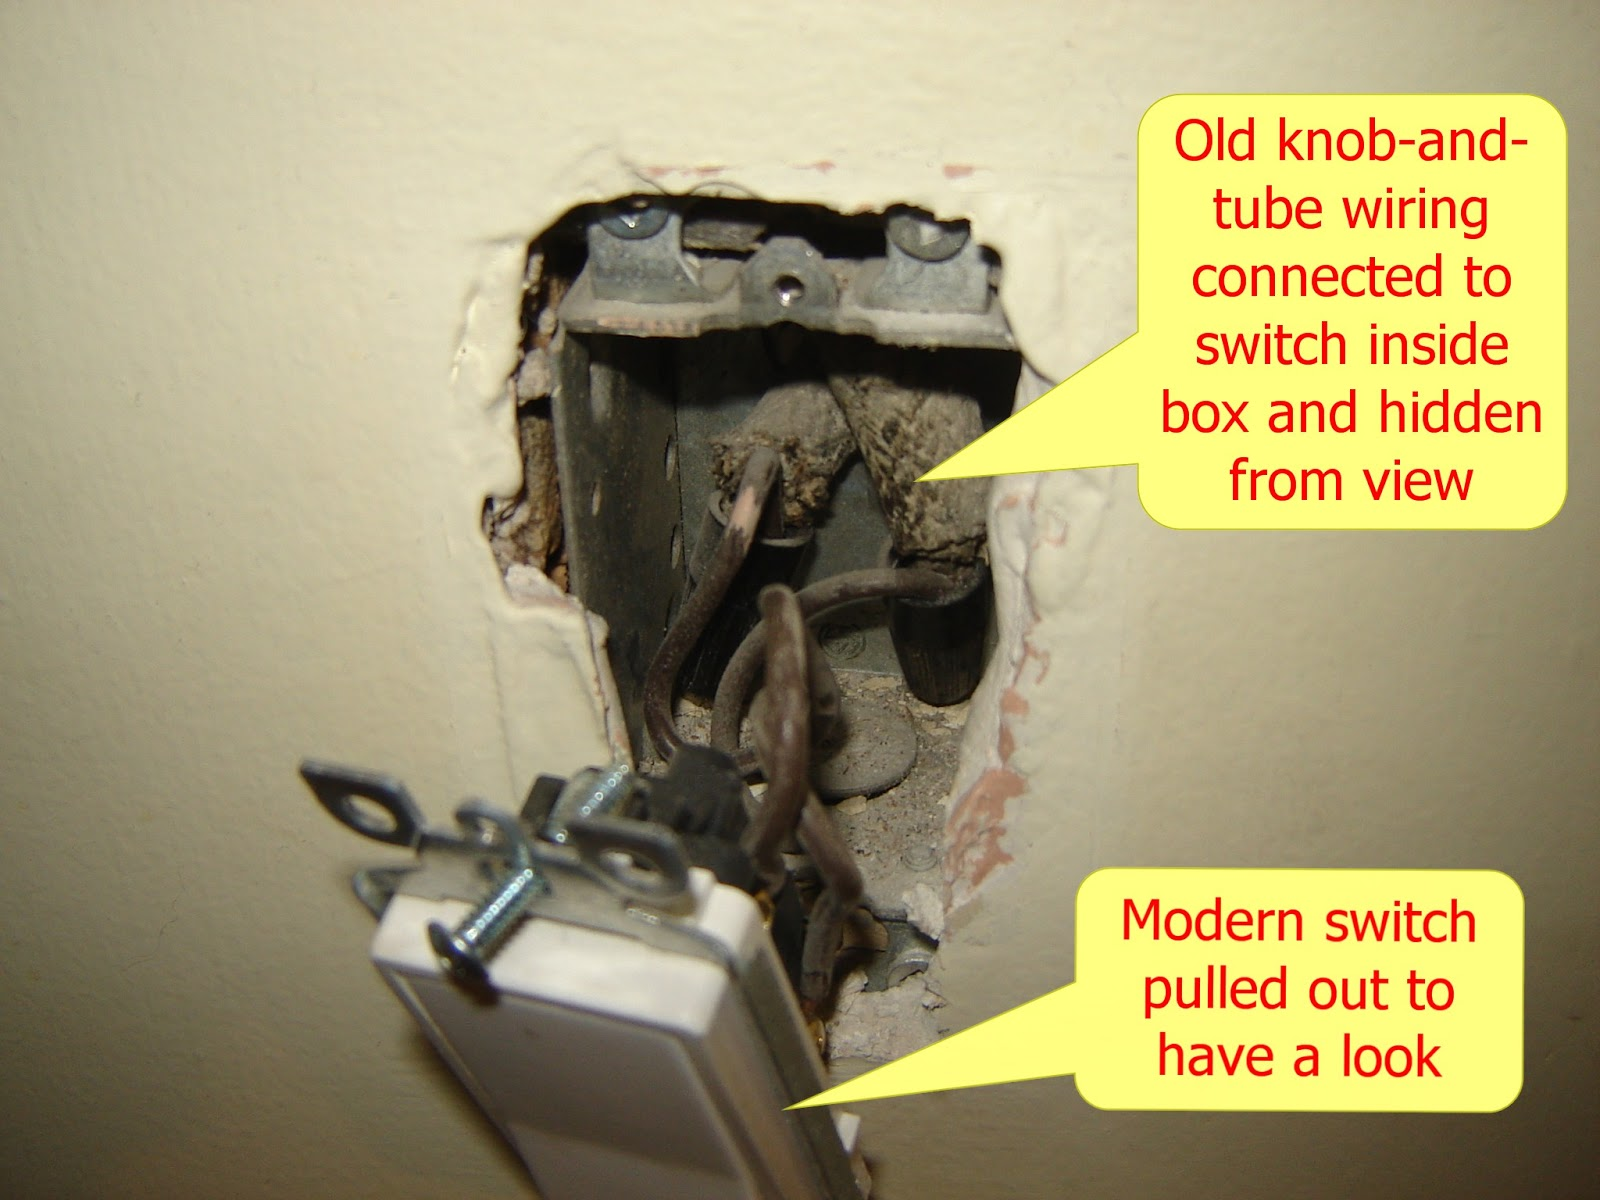 Home Buyers Advisors: AND TUBE WIRING: THE CURSE OF OLD ... on old tube oil, black tube wiring, open tube wiring,